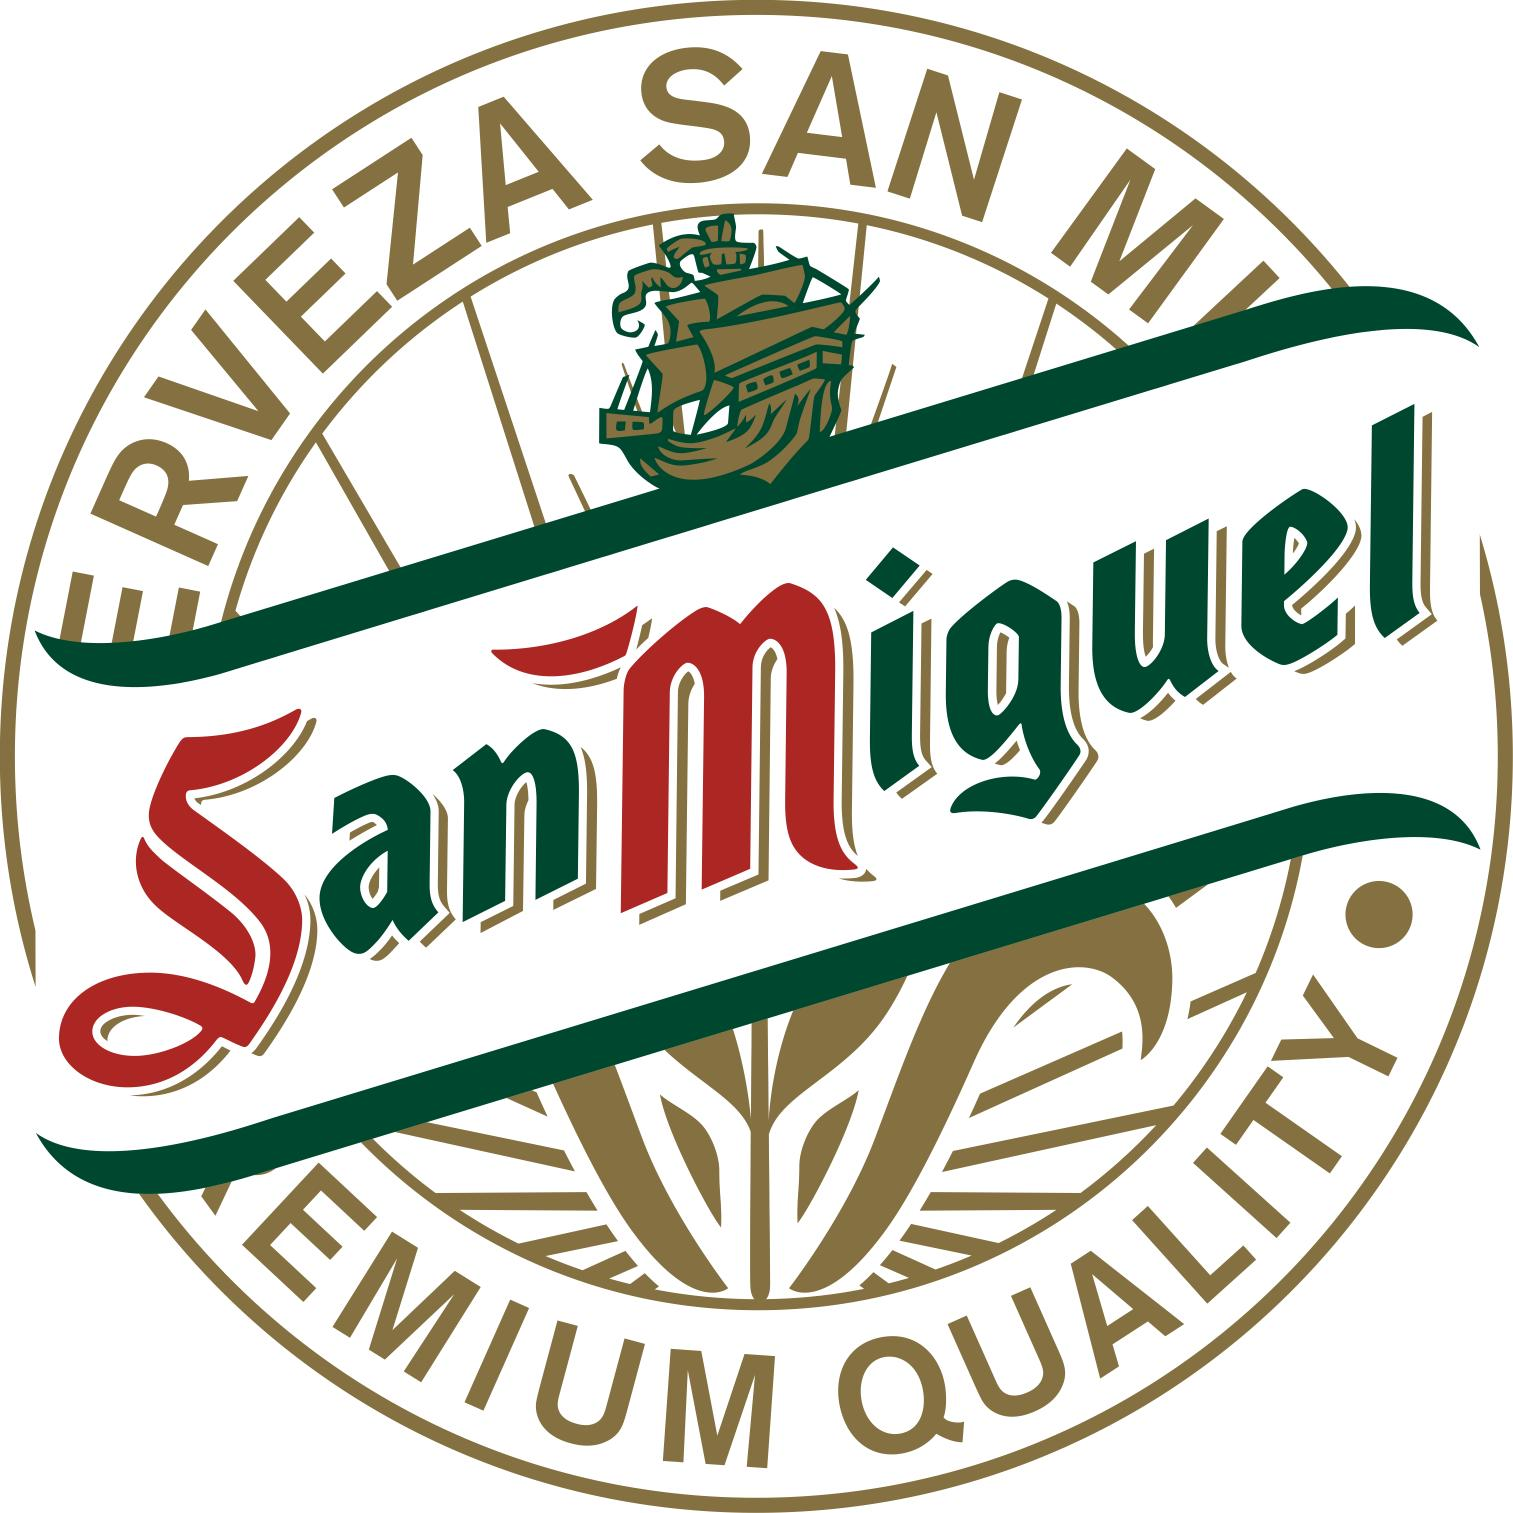 Philippines. San Miguel Brewery Incorporated increased volumes by 3% in 2015